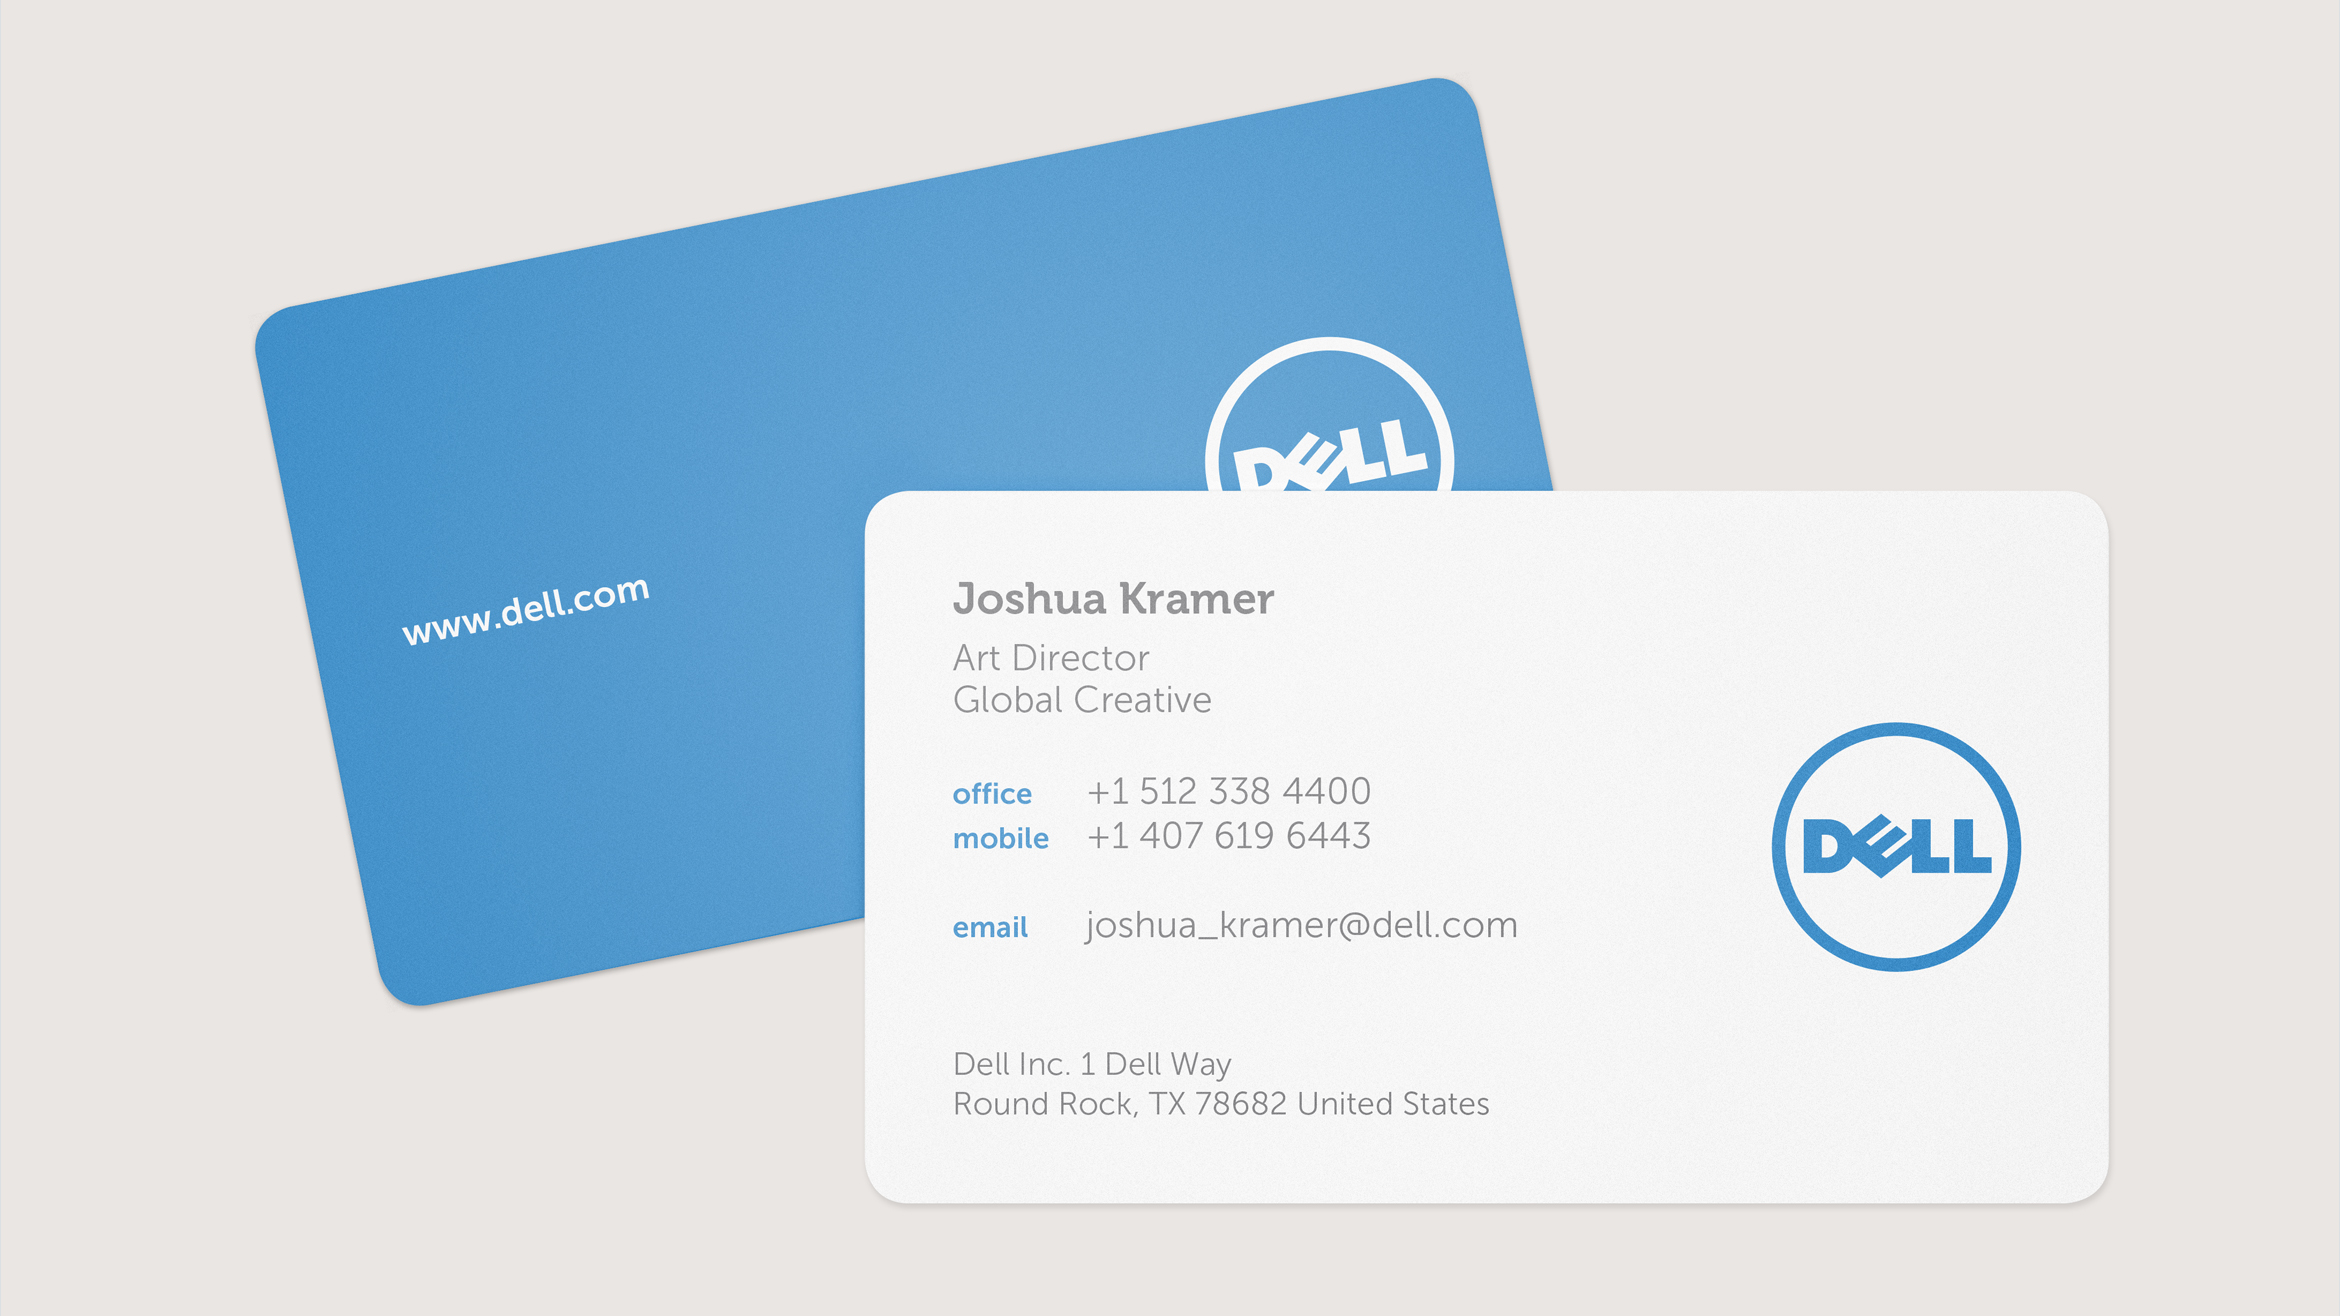 jk_dell_bsuiness_card_2340x1316